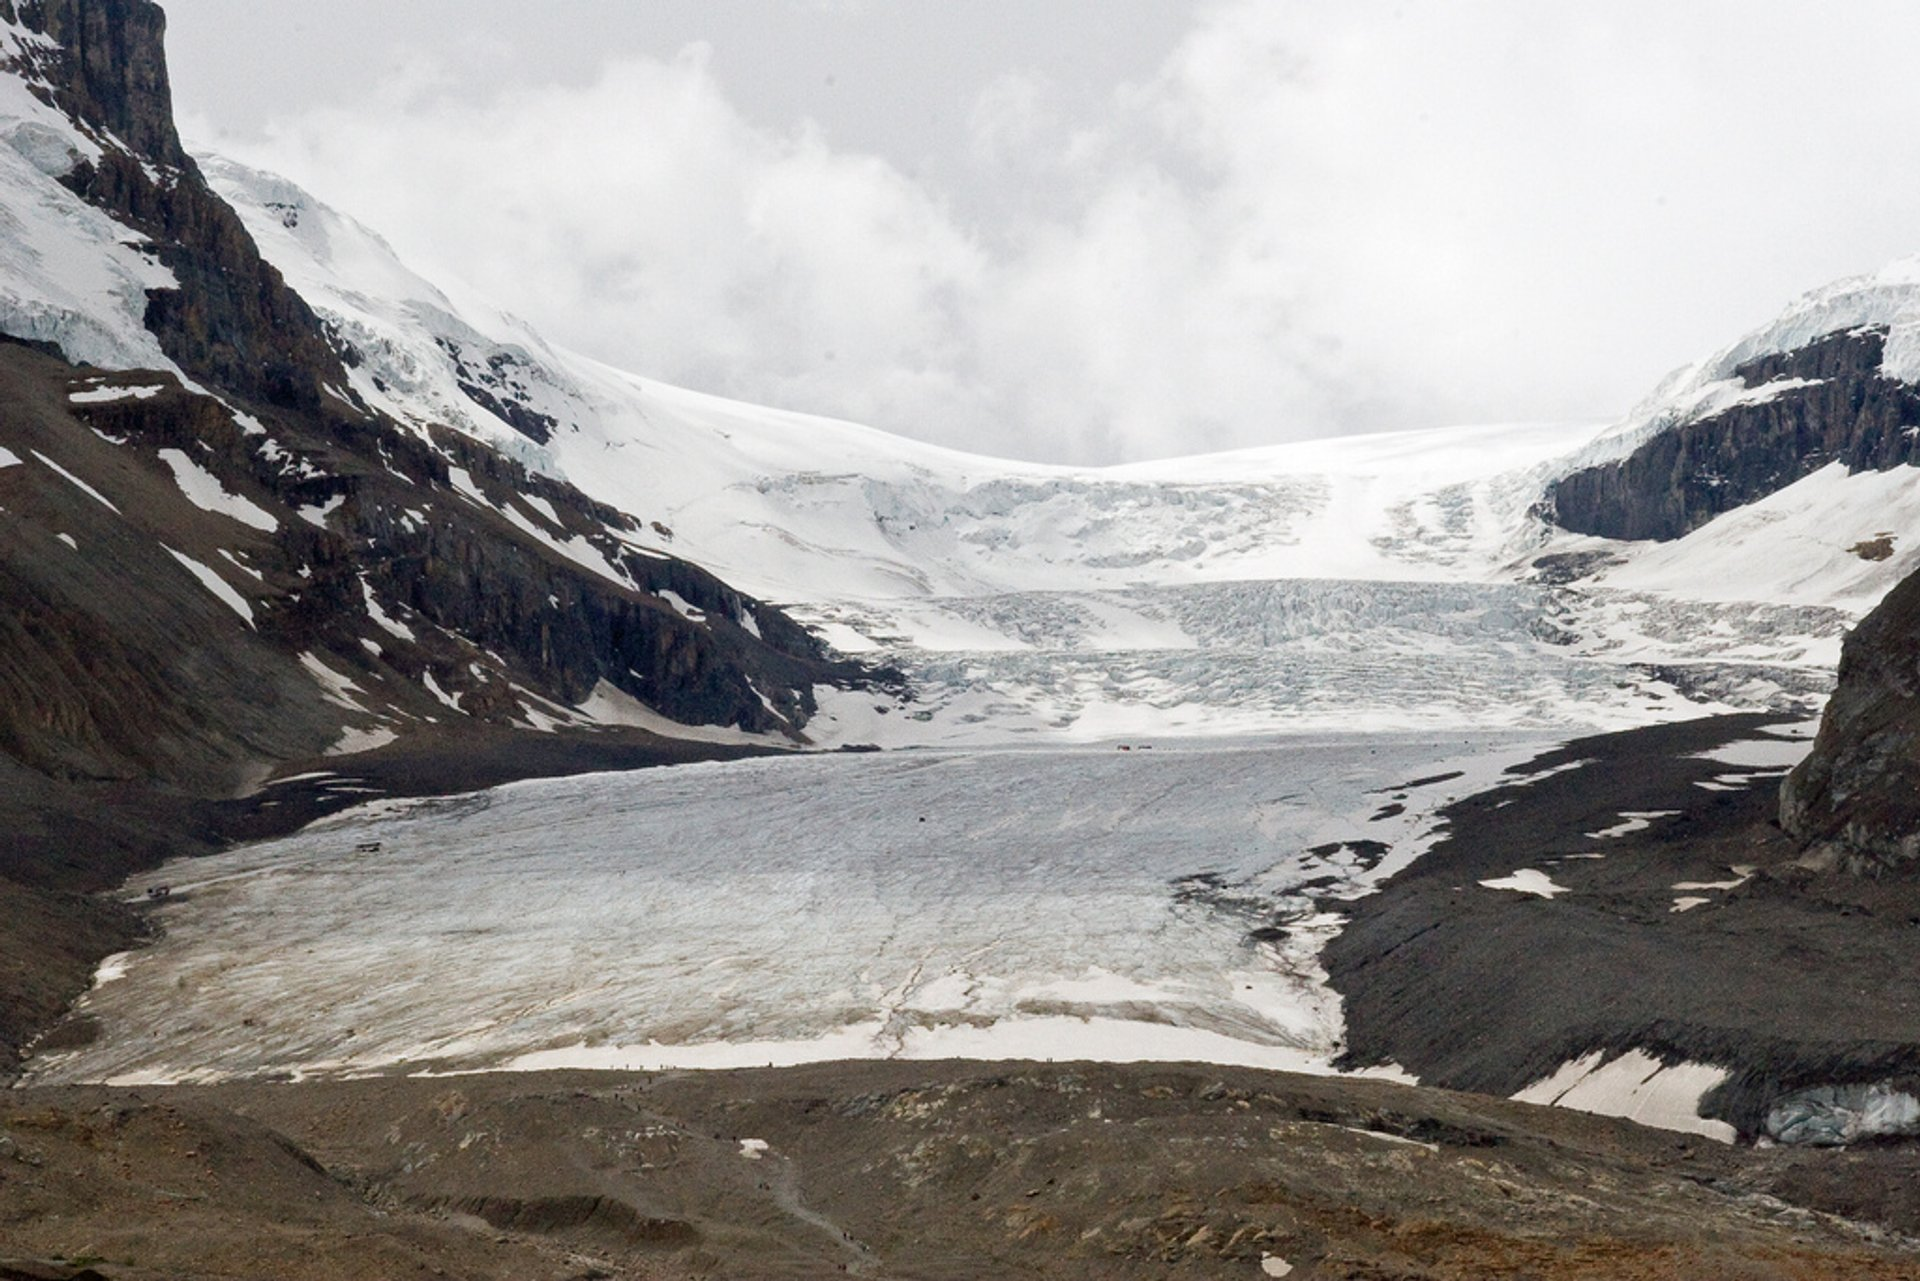 Columbia Icefield, Athabasca Glacier in Banff & Jasper National Parks 2019 - Best Time